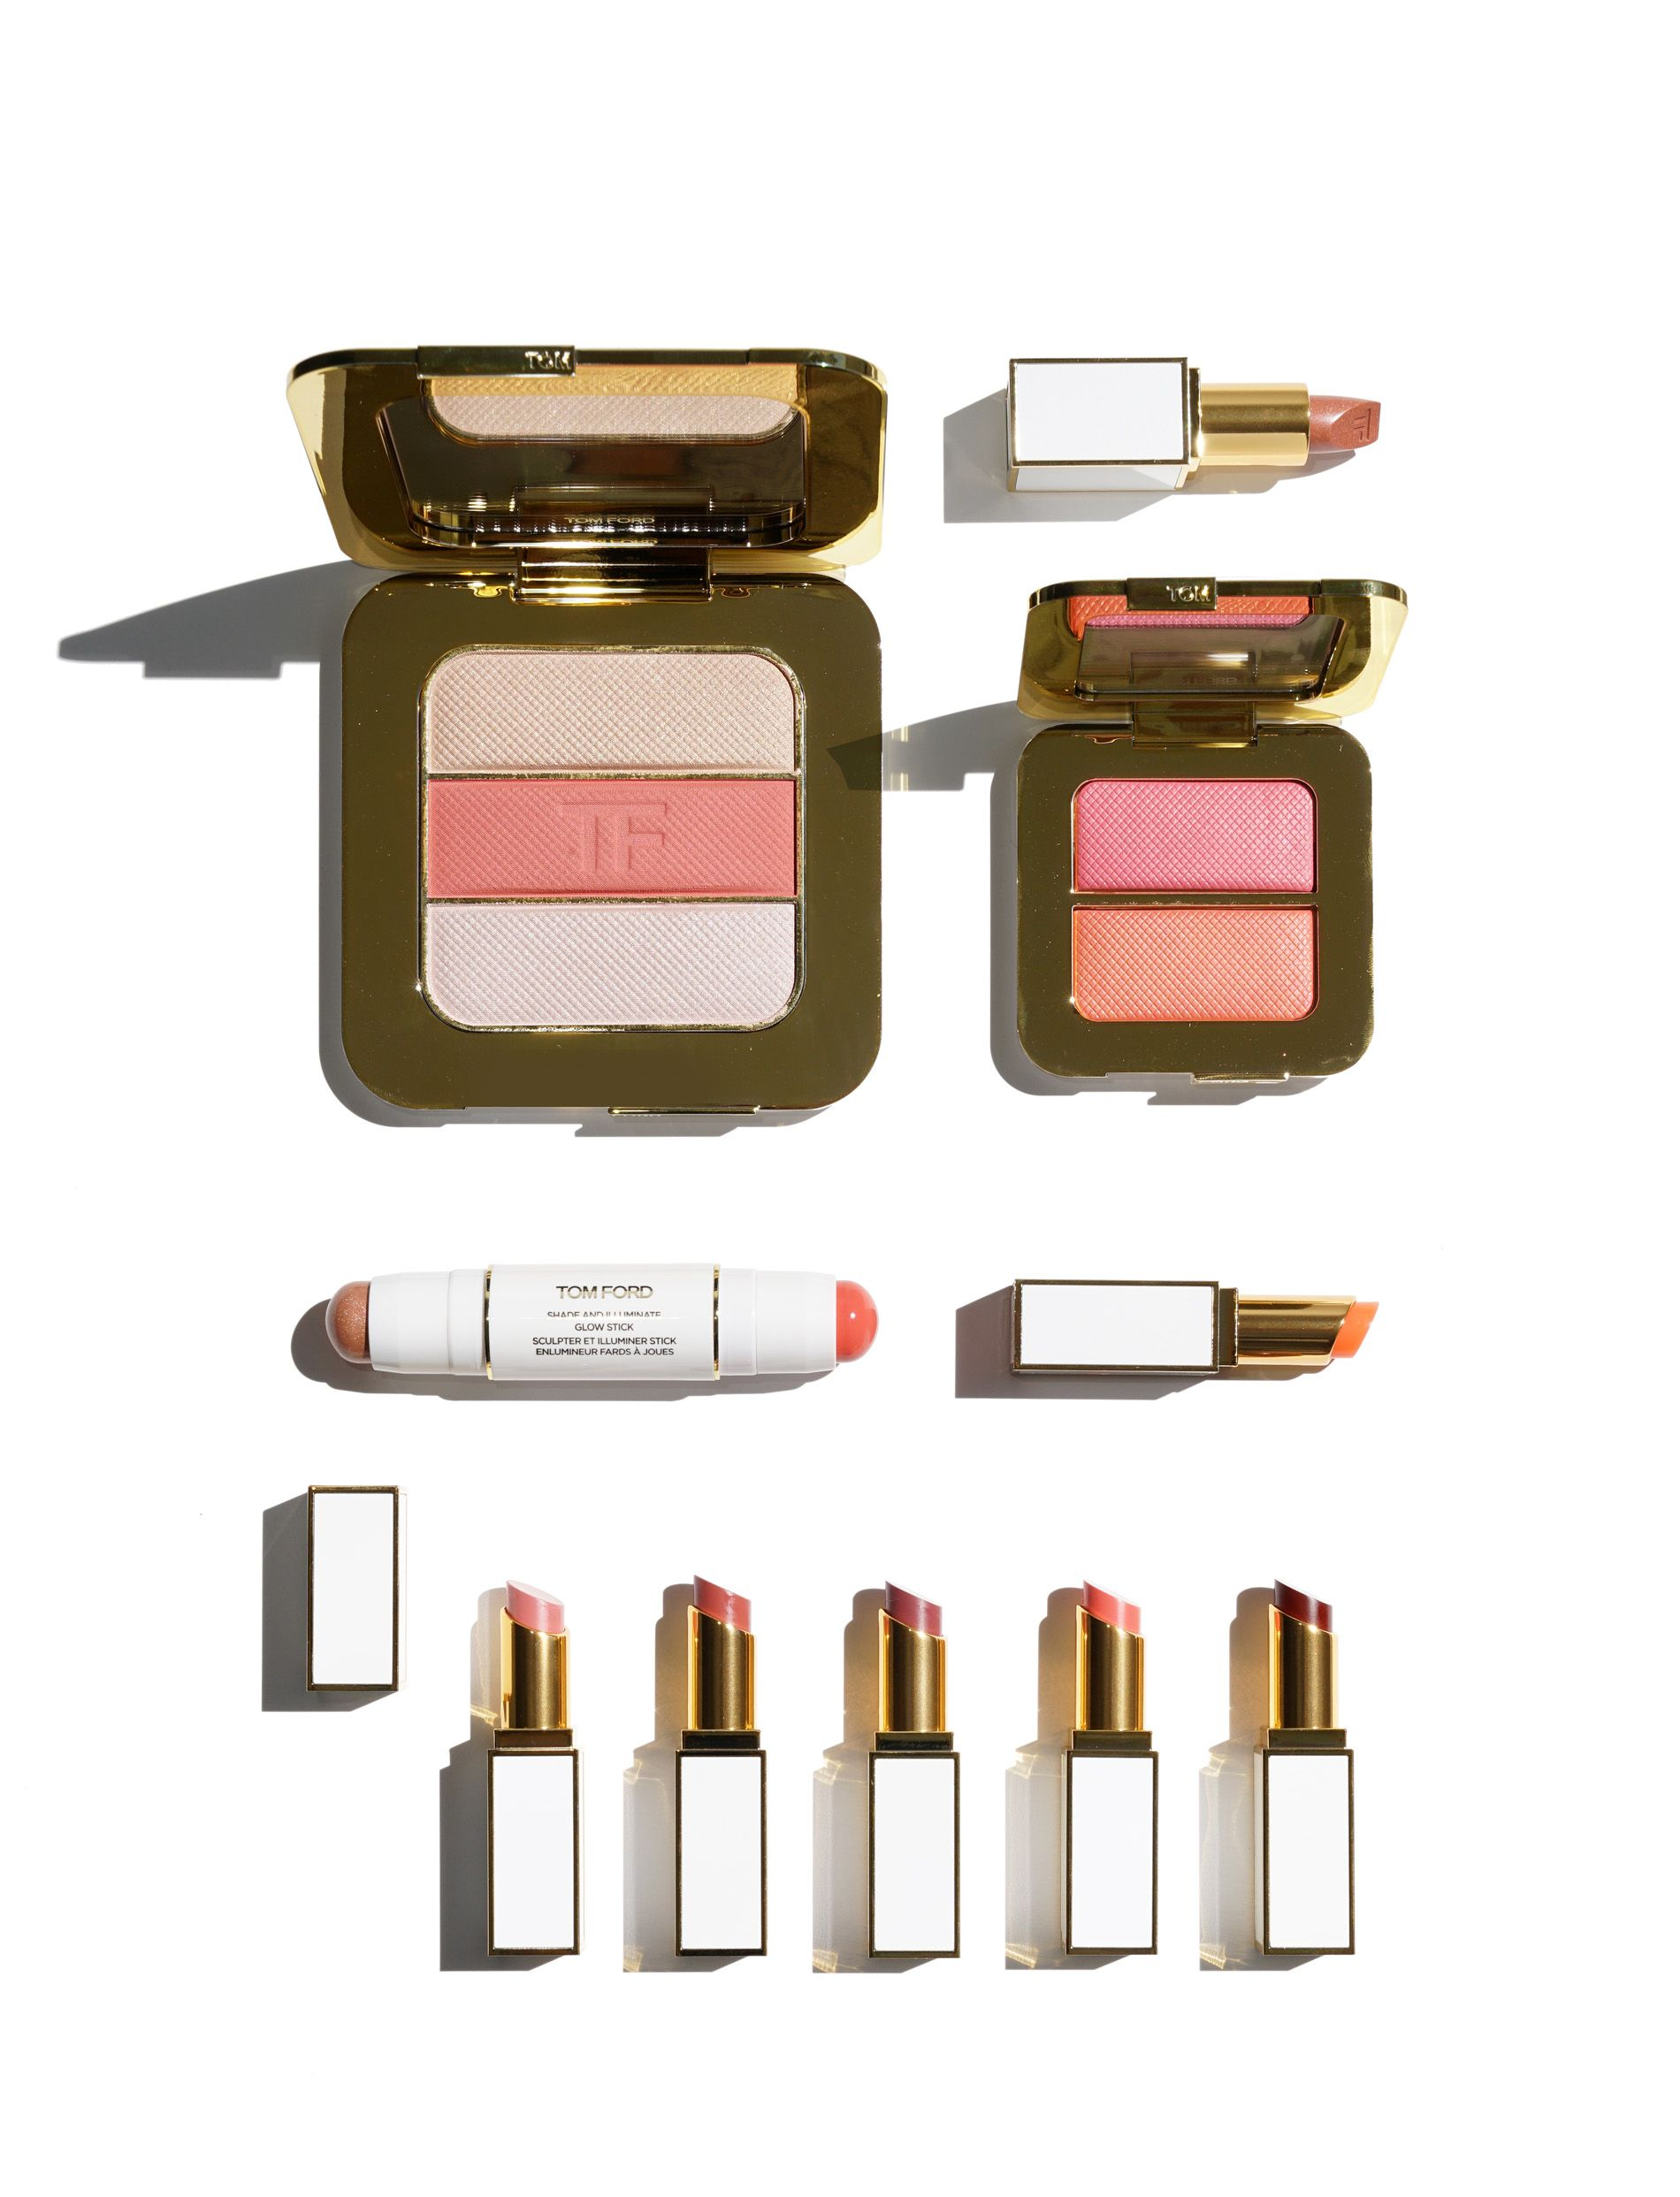 Tom summer ford makeup collection recommendations to wear for spring in 2019